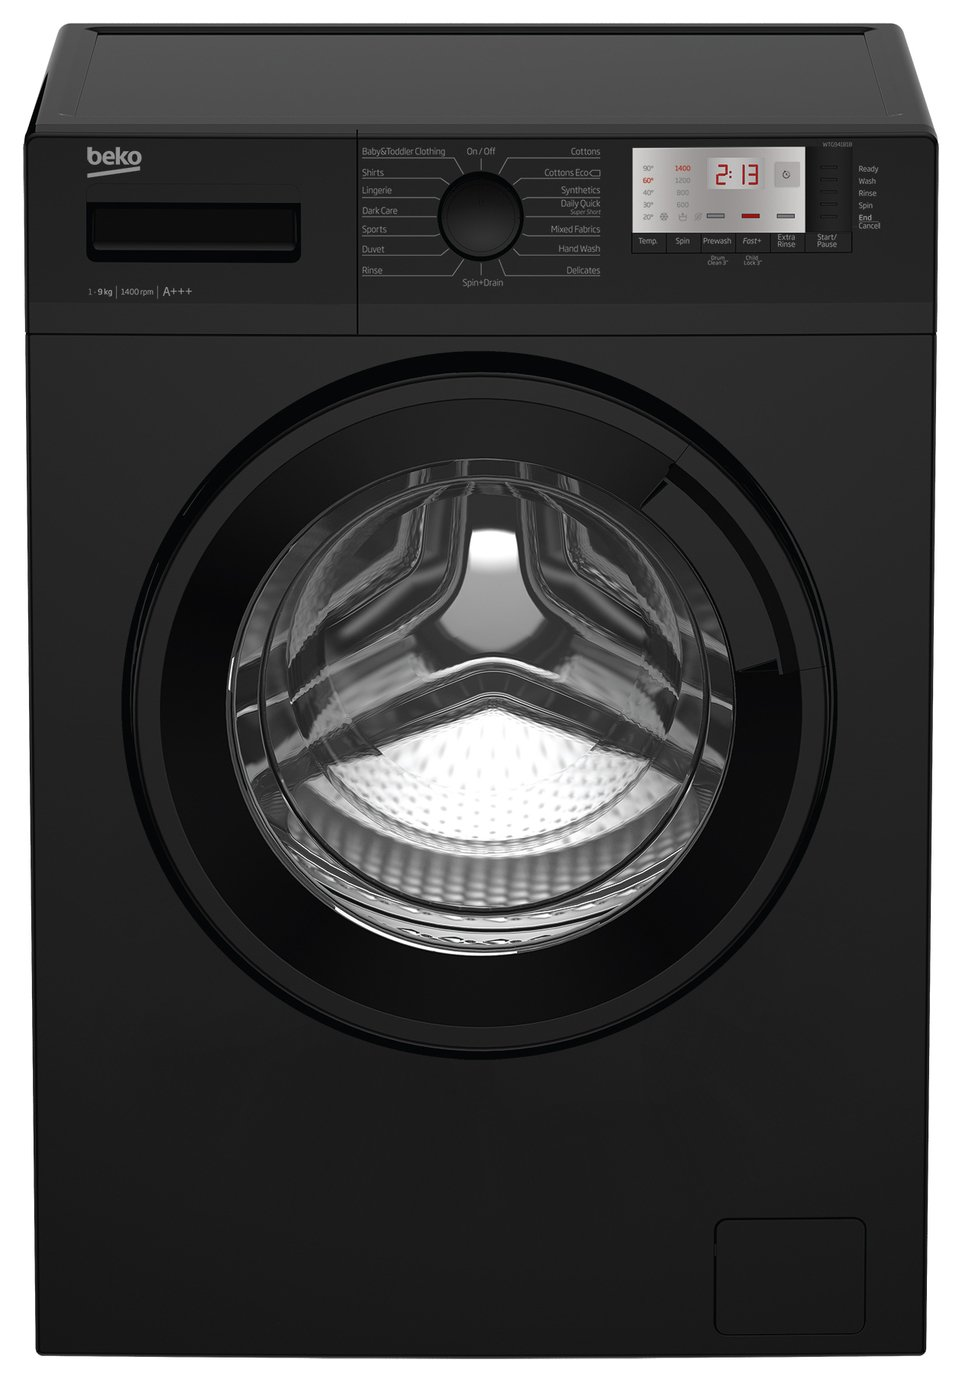 Beko WTG941B1B 9KG 1400 Spin Washing Machine - Black from Beko